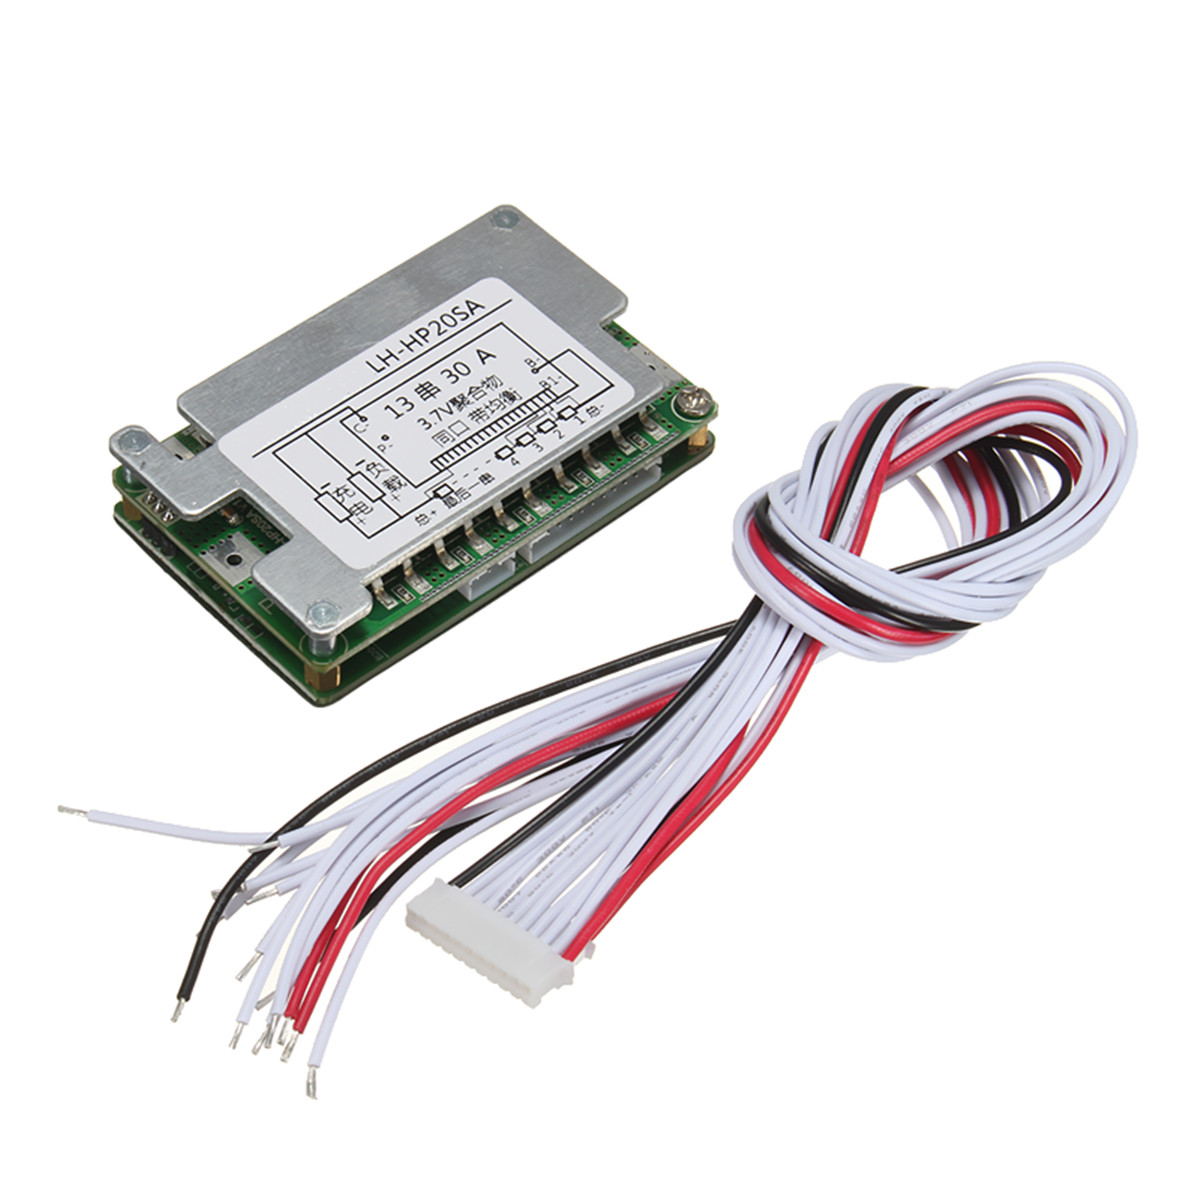 New Arrival 48v Bms 13s Li Ion Battery 30a Lithium Electronic Wiring Board Protection Balance Wire Module 70x45x15mm In Integrated Circuits From